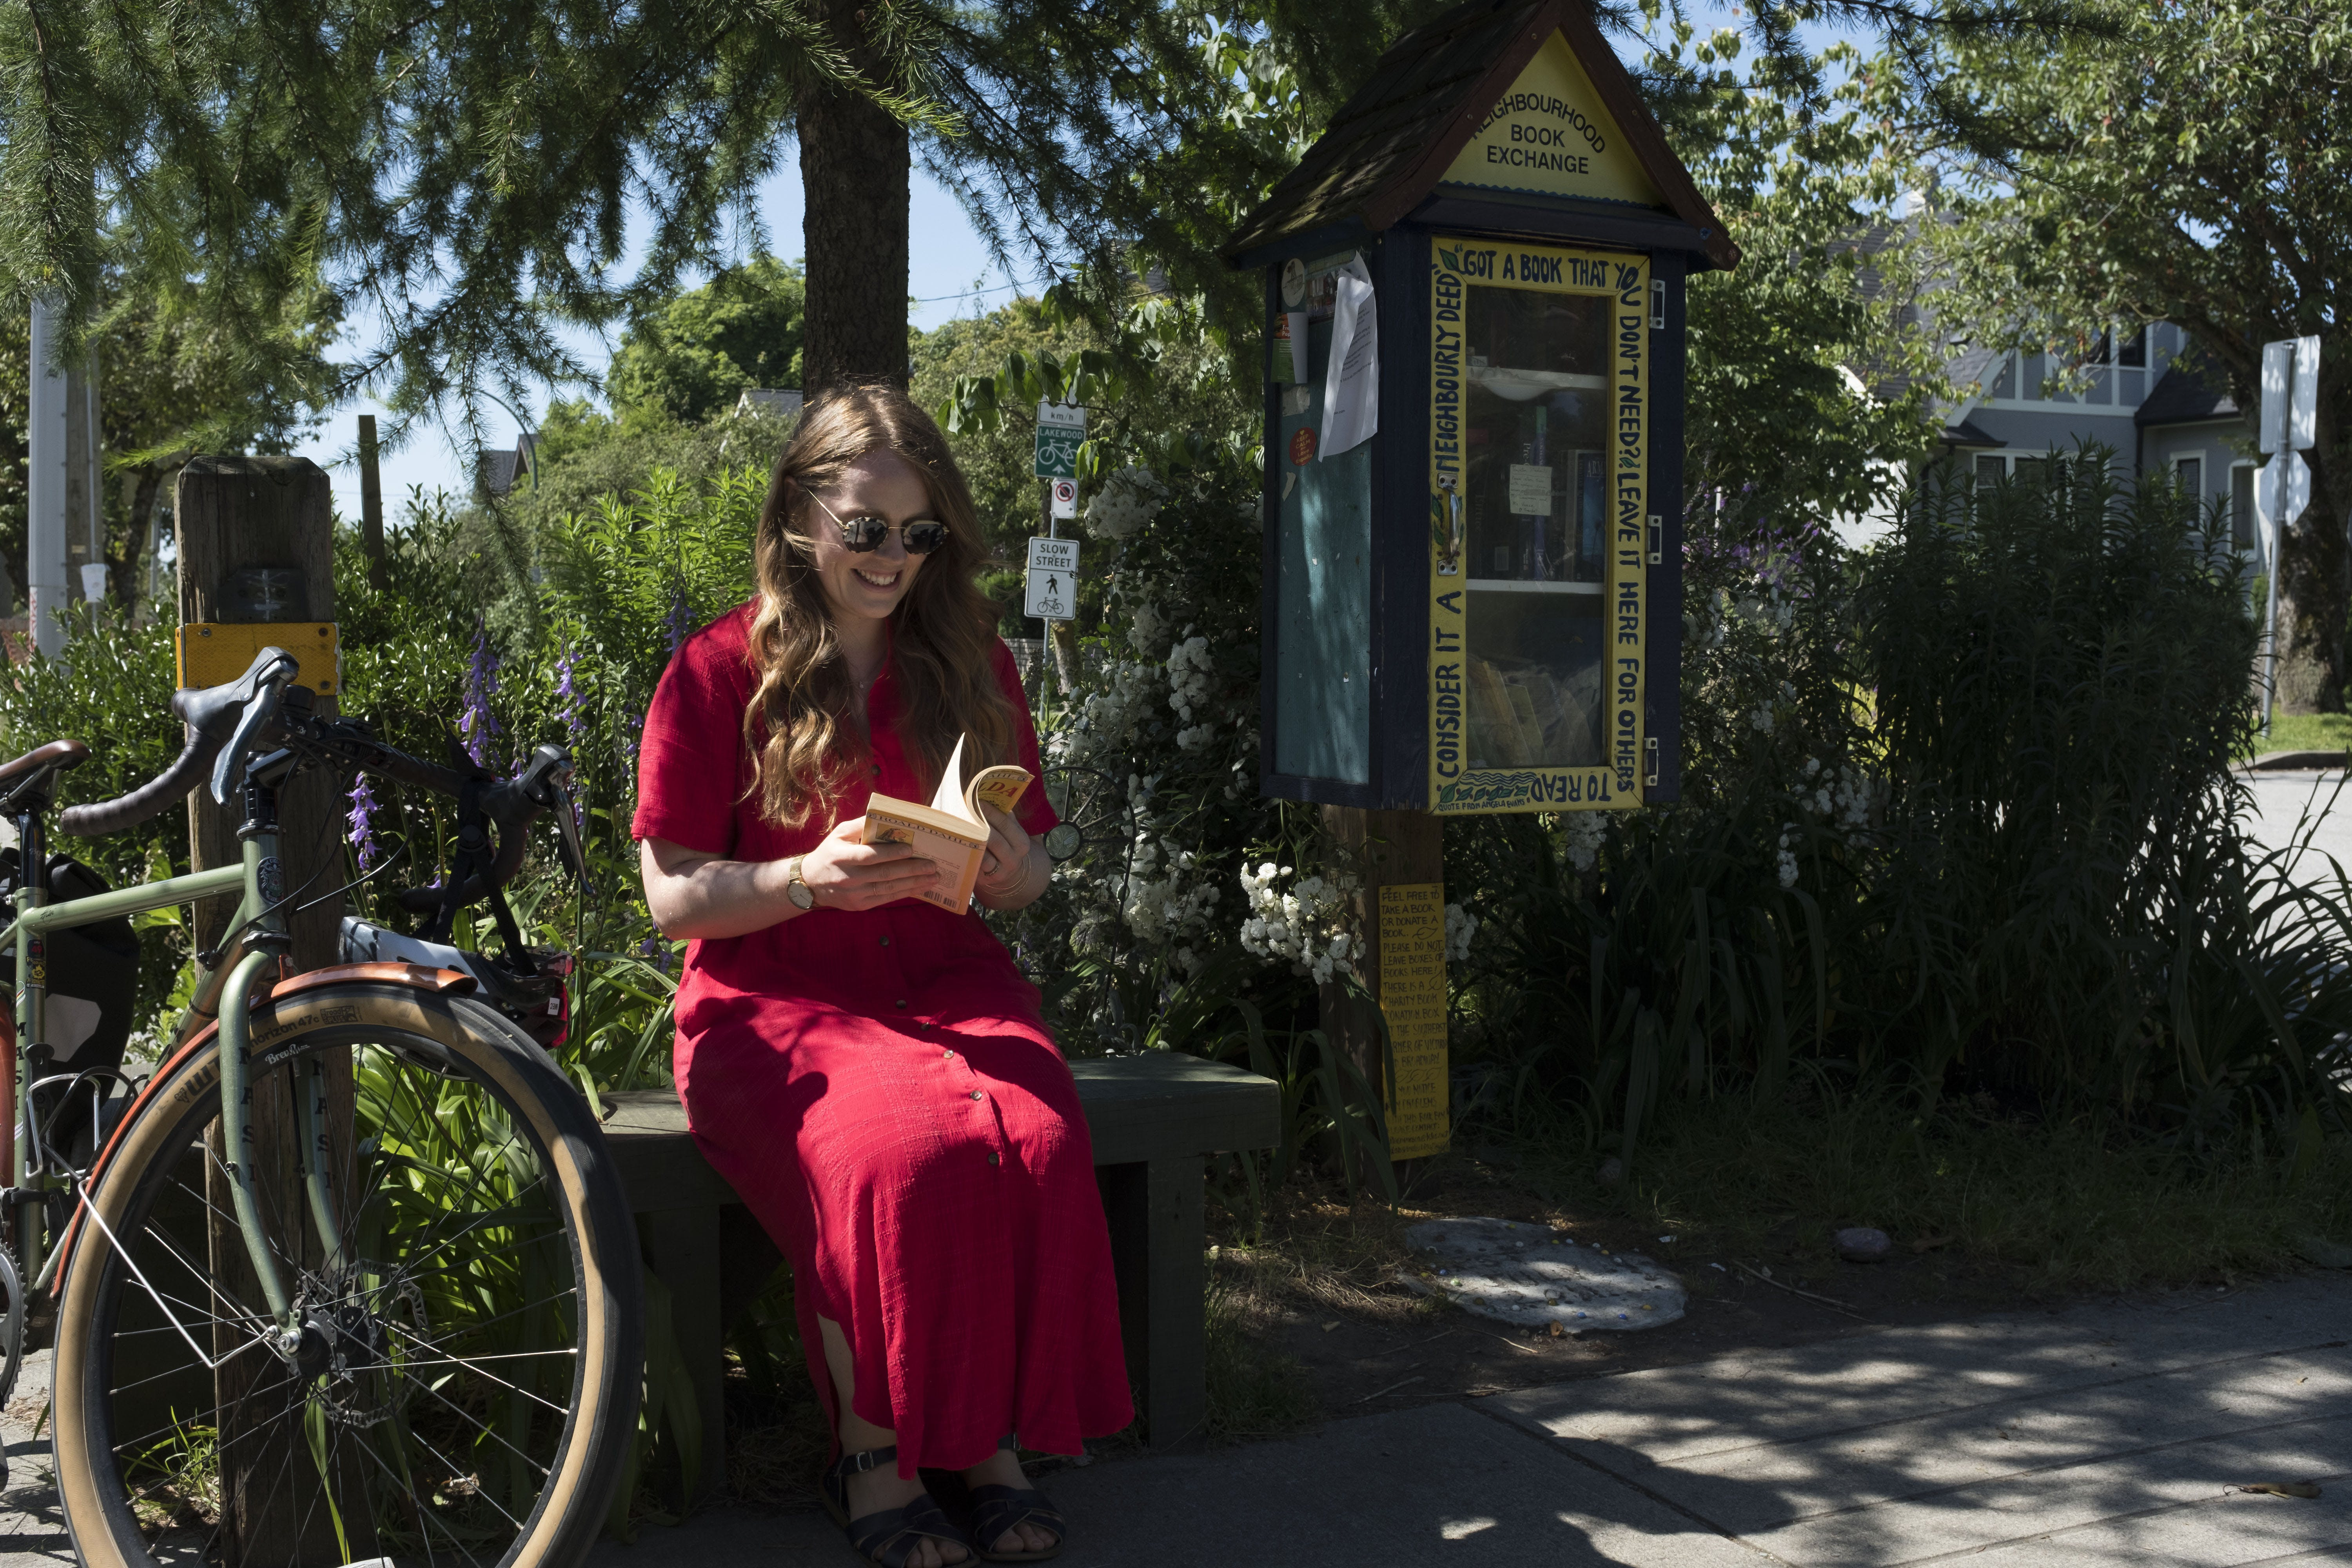 A resident reading a book near Book Exchange pop-up at Lakewood Drive and Charles Street.